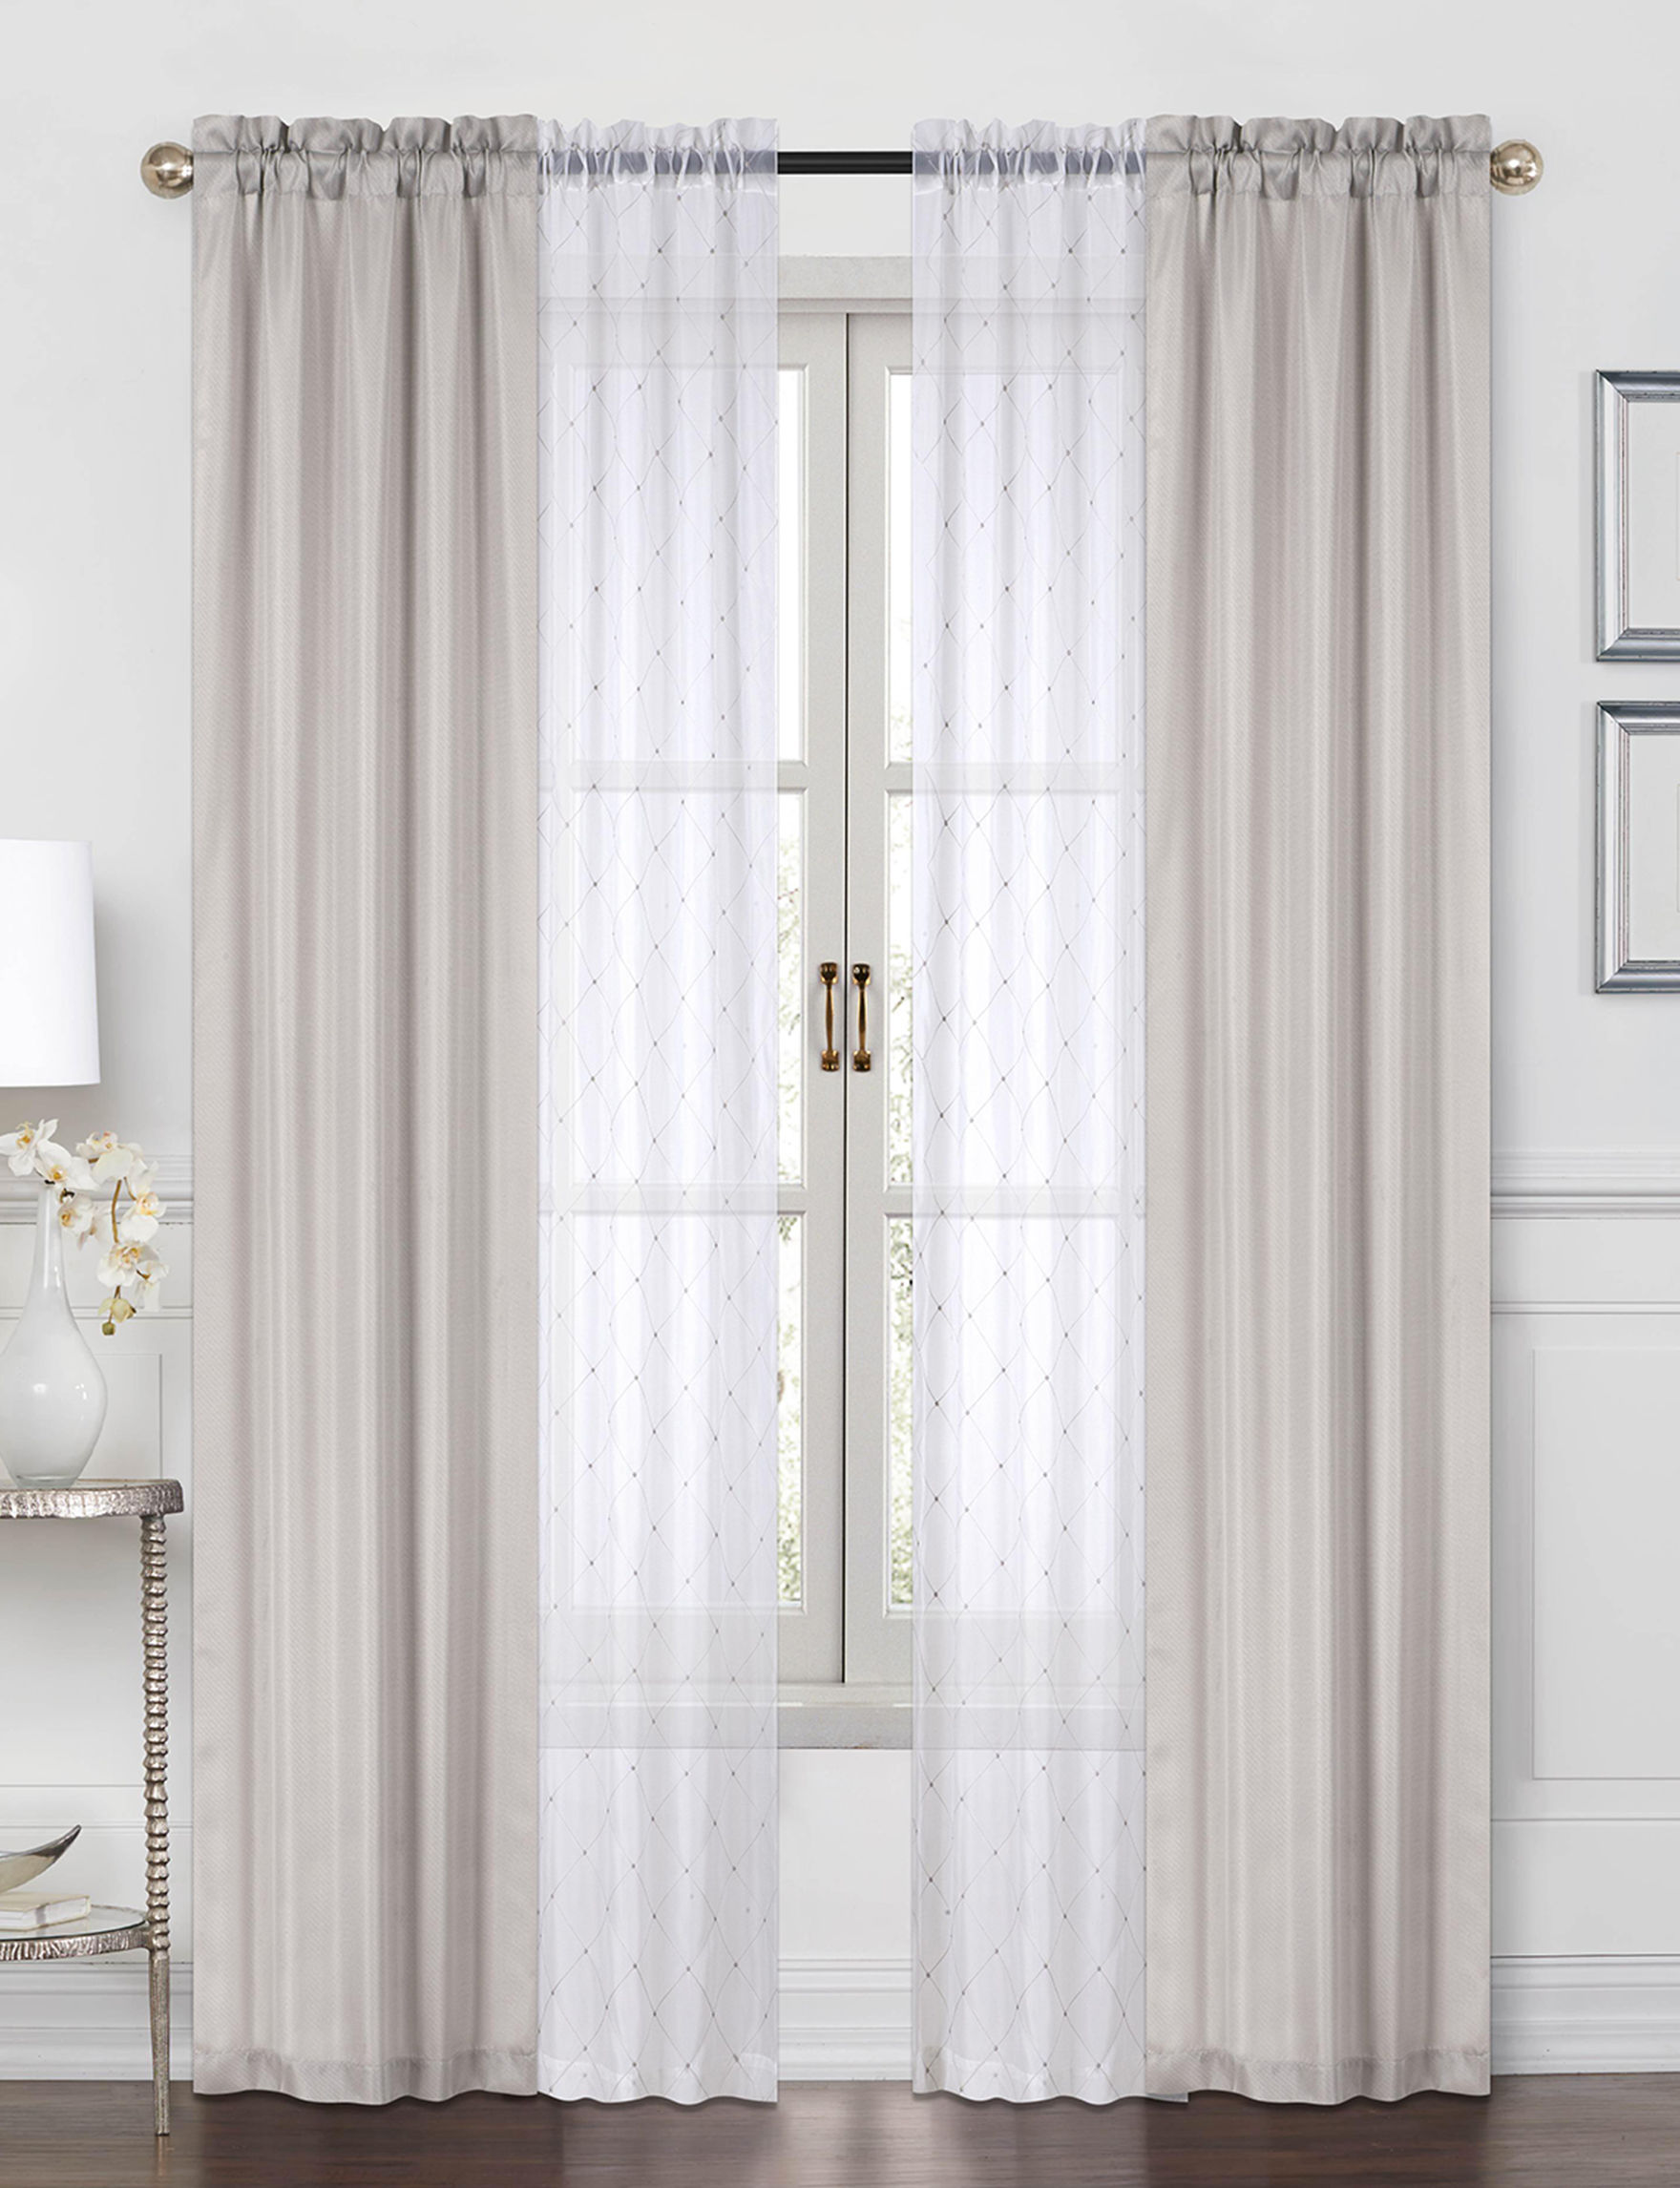 Casa Beige Curtains & Drapes Window Treatments